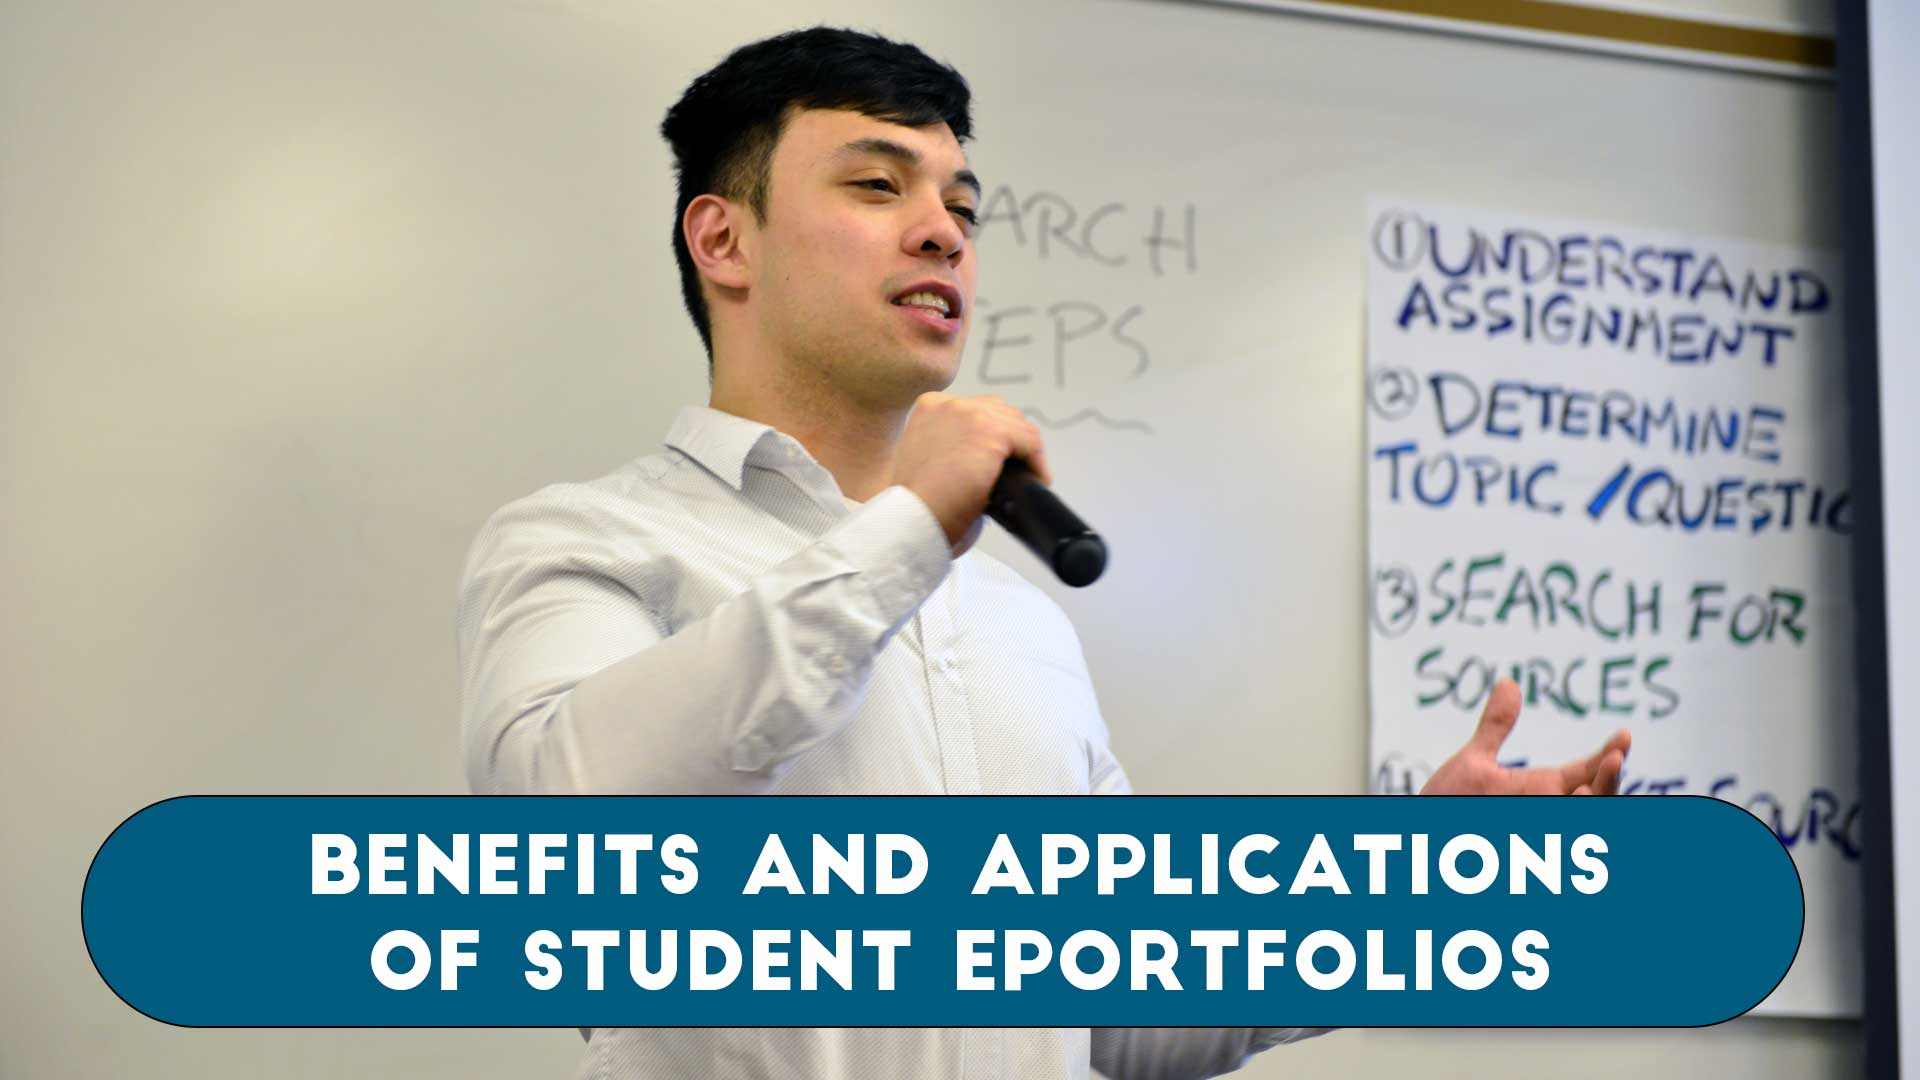 Benefits and Applications of Student ePortfolios